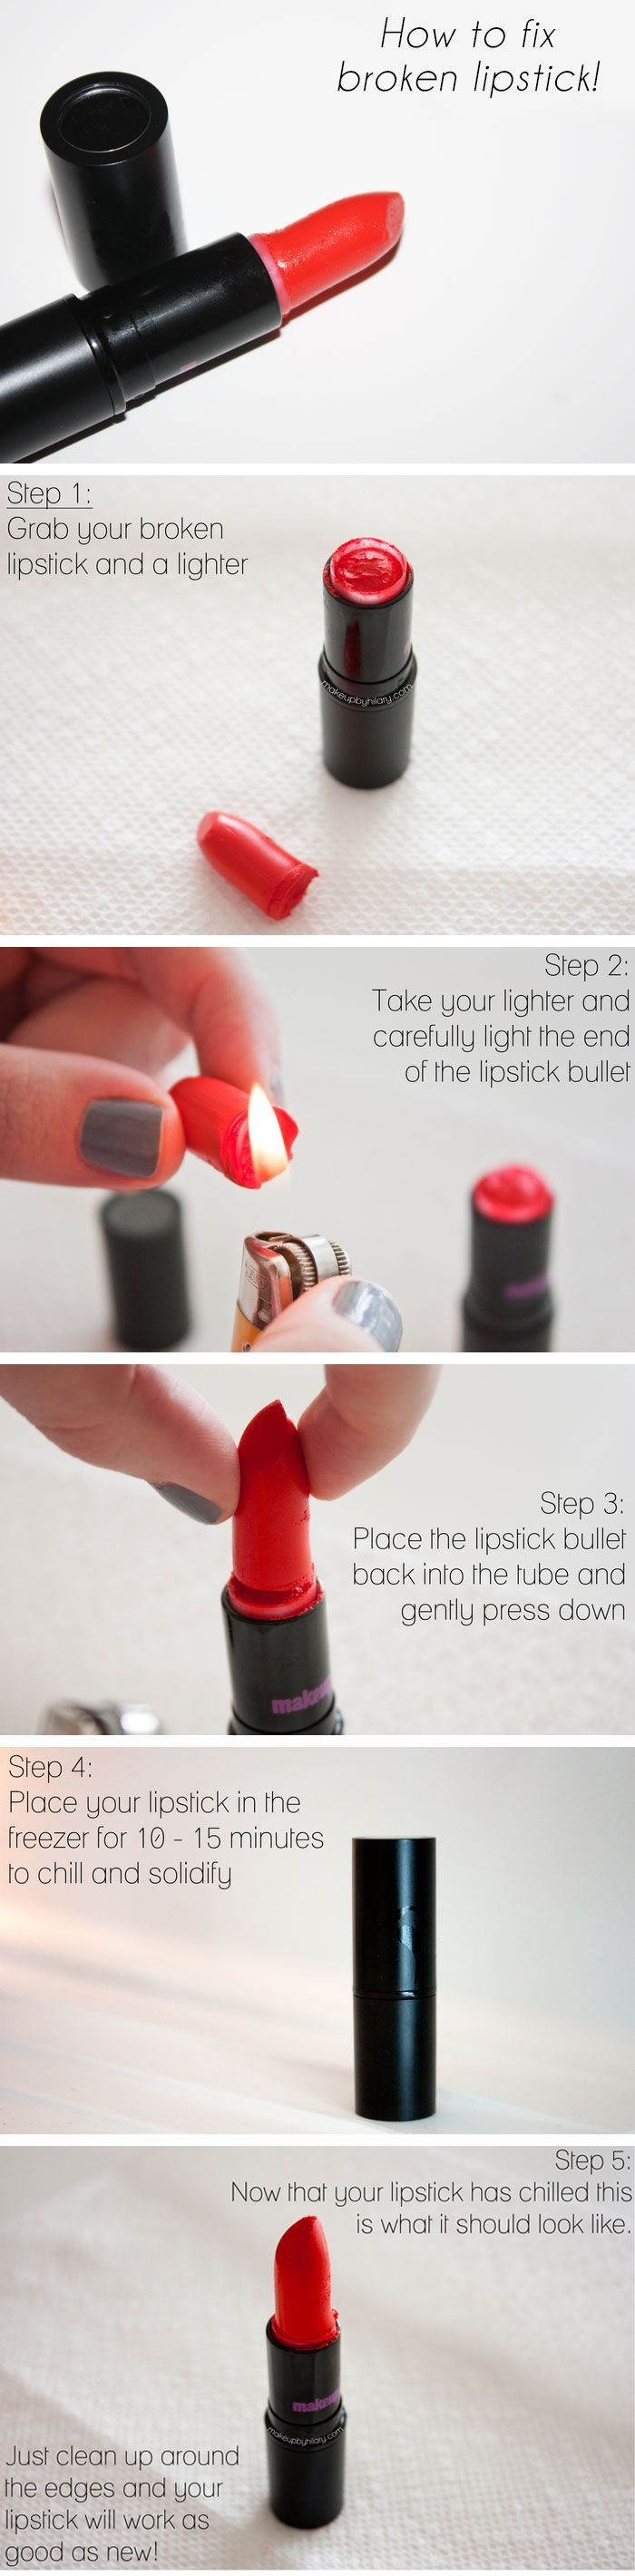 How to Fix Broken Lipstick   Click Pic for 25 Simple Life Hacks Every Girl Should Know   DIY Beauty Hacks Every Girl Should Know DIY beauty #diy